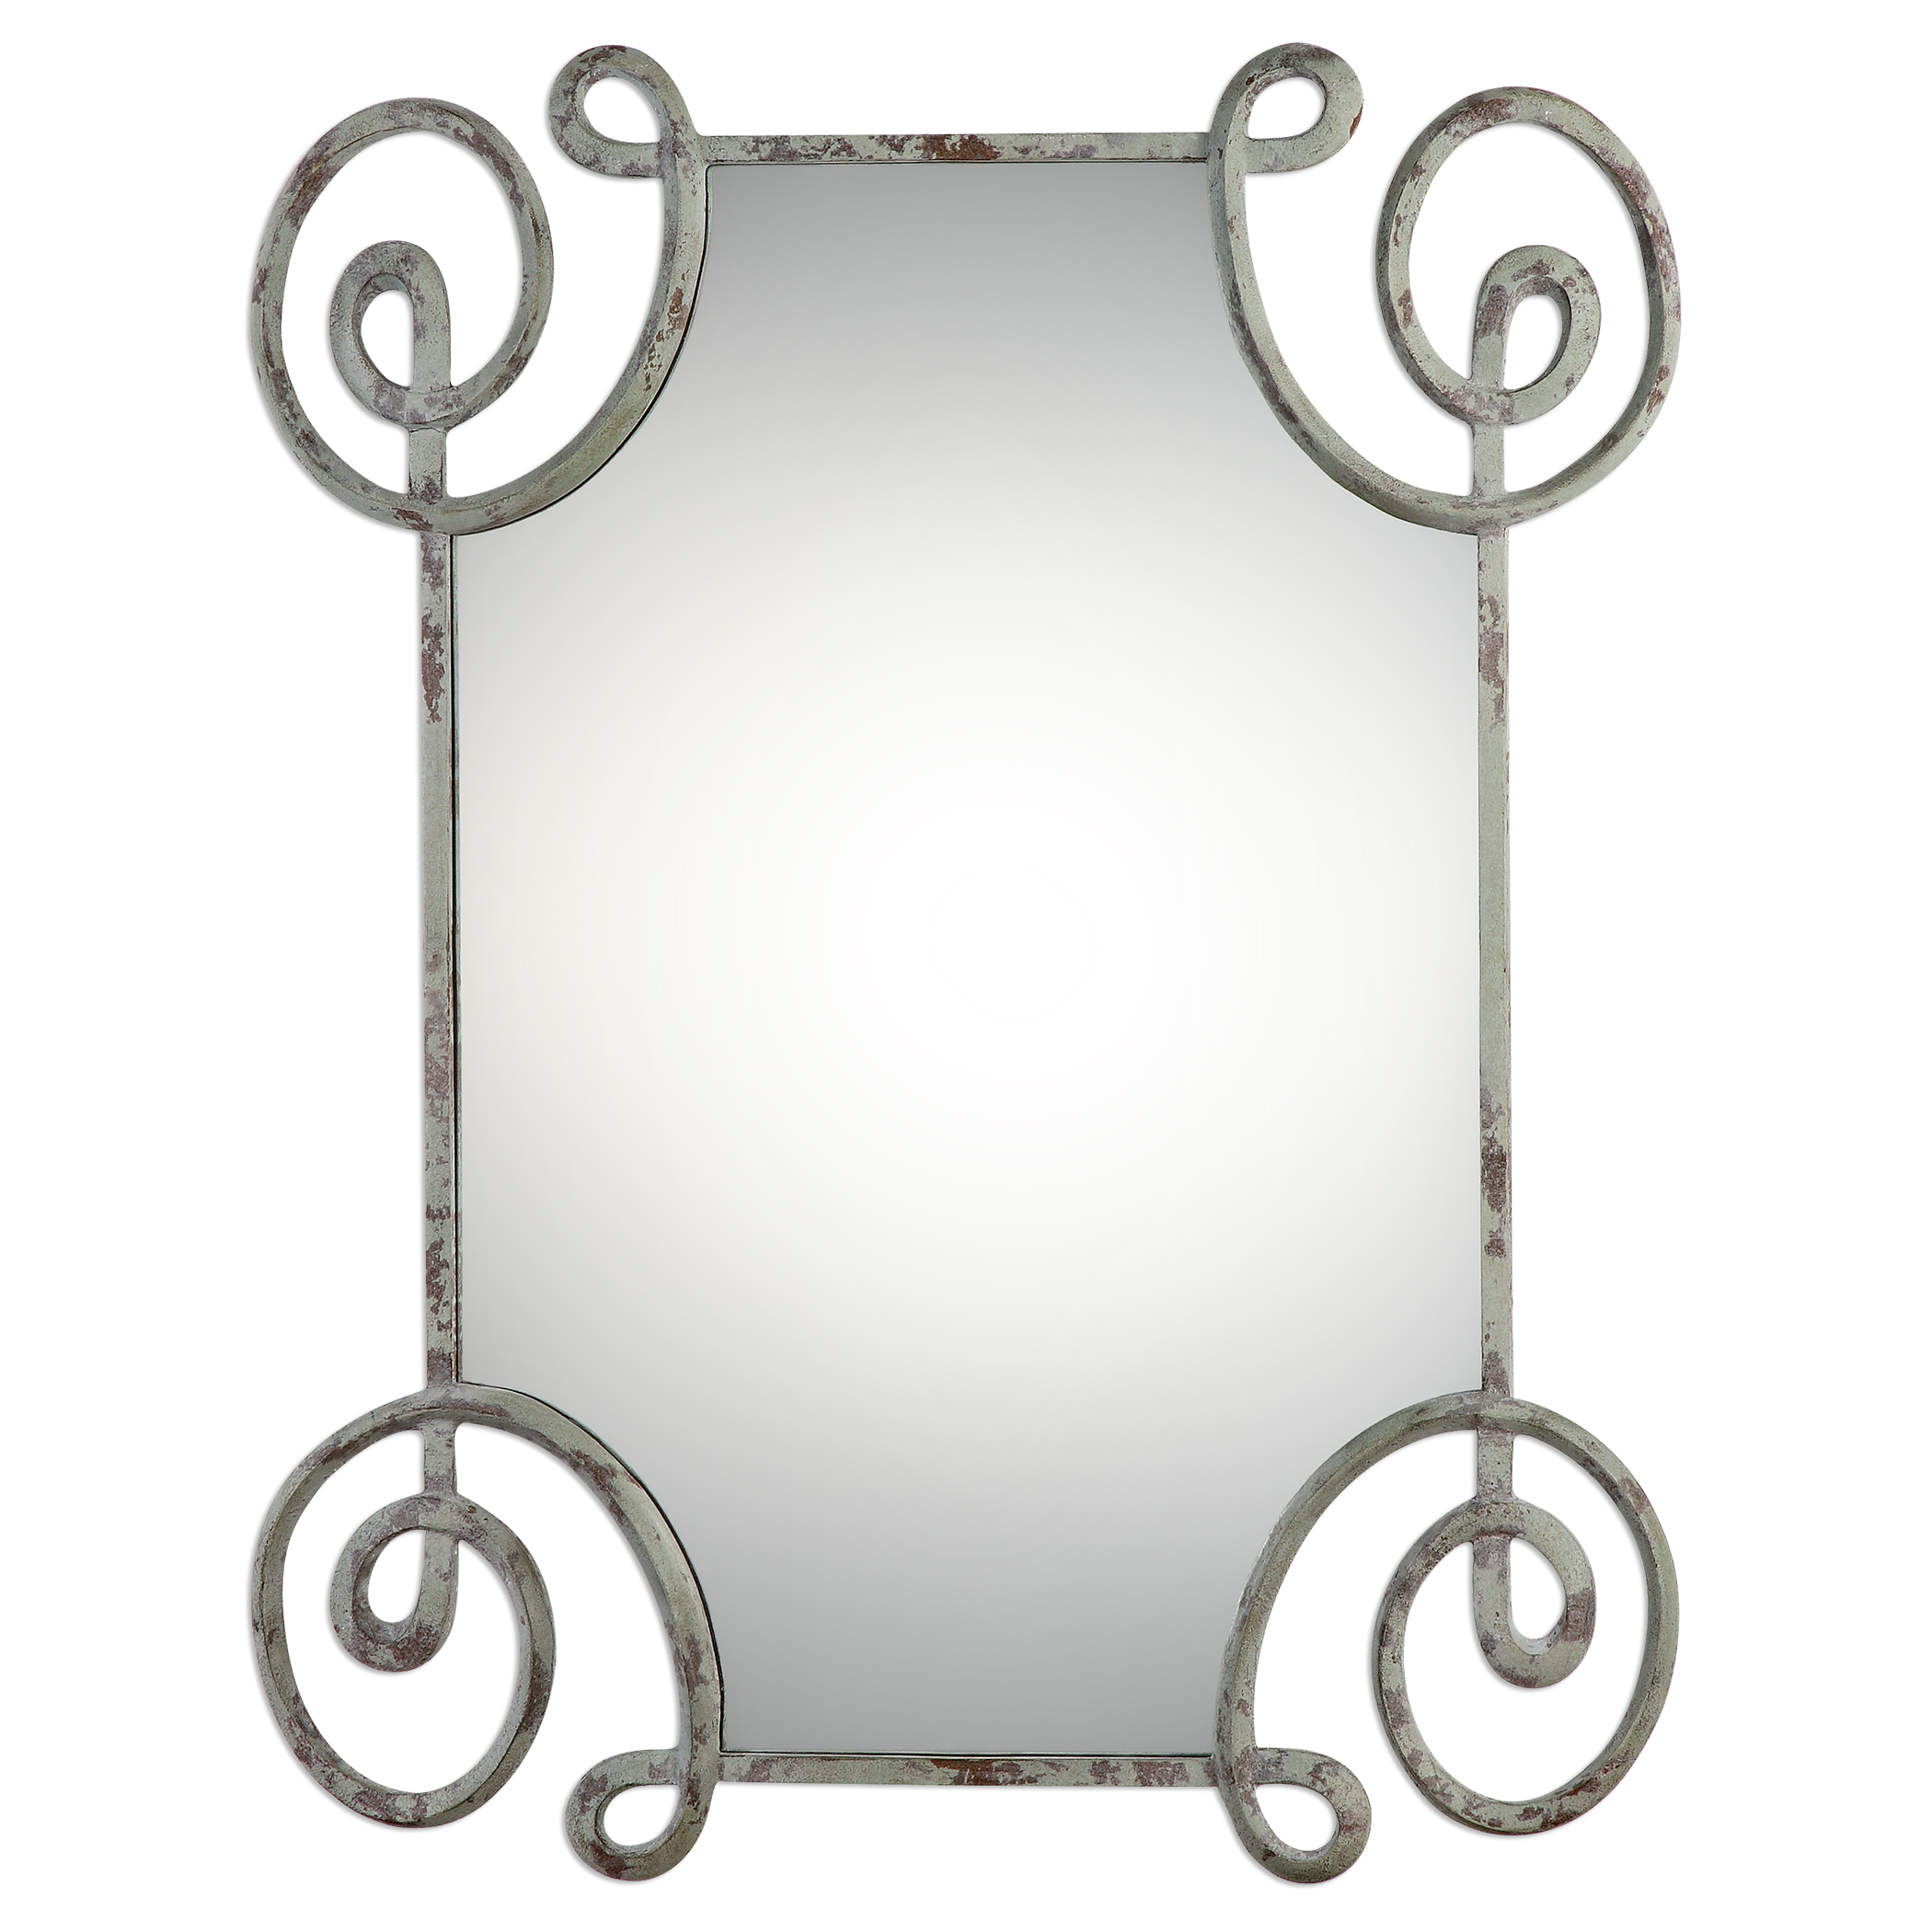 Uttermost Mirrors Rennes Distressed Iron Mirror - Item Number: 09104